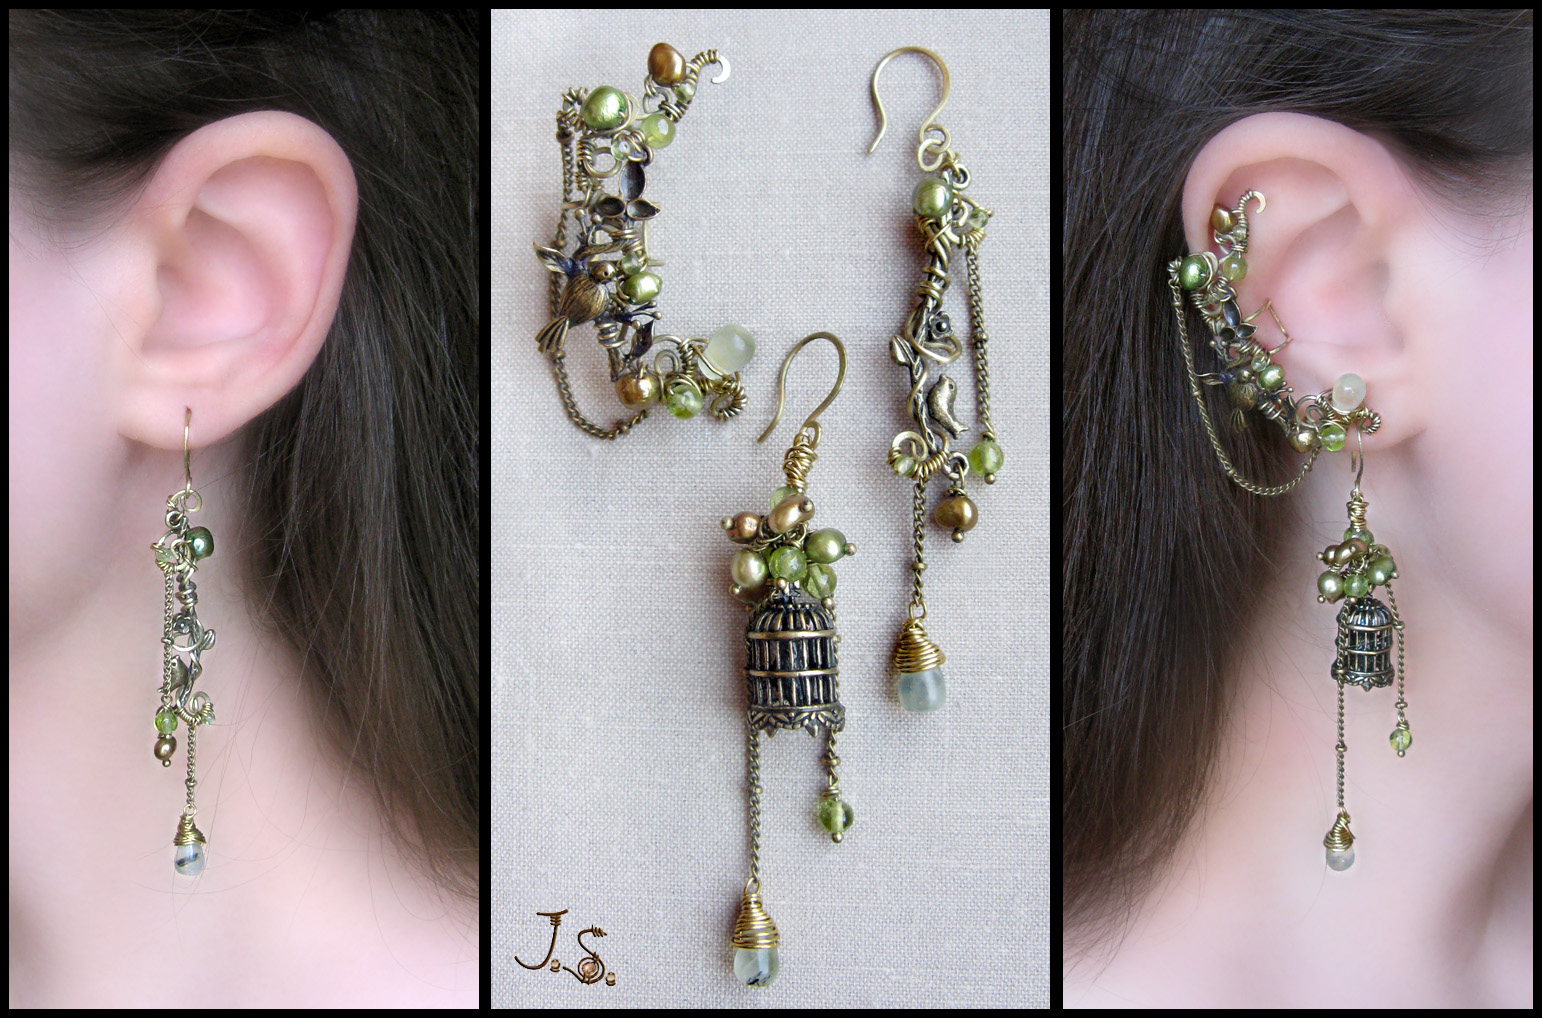 Voices of nightingales-2 ear cuff and earrings by JSjewelry